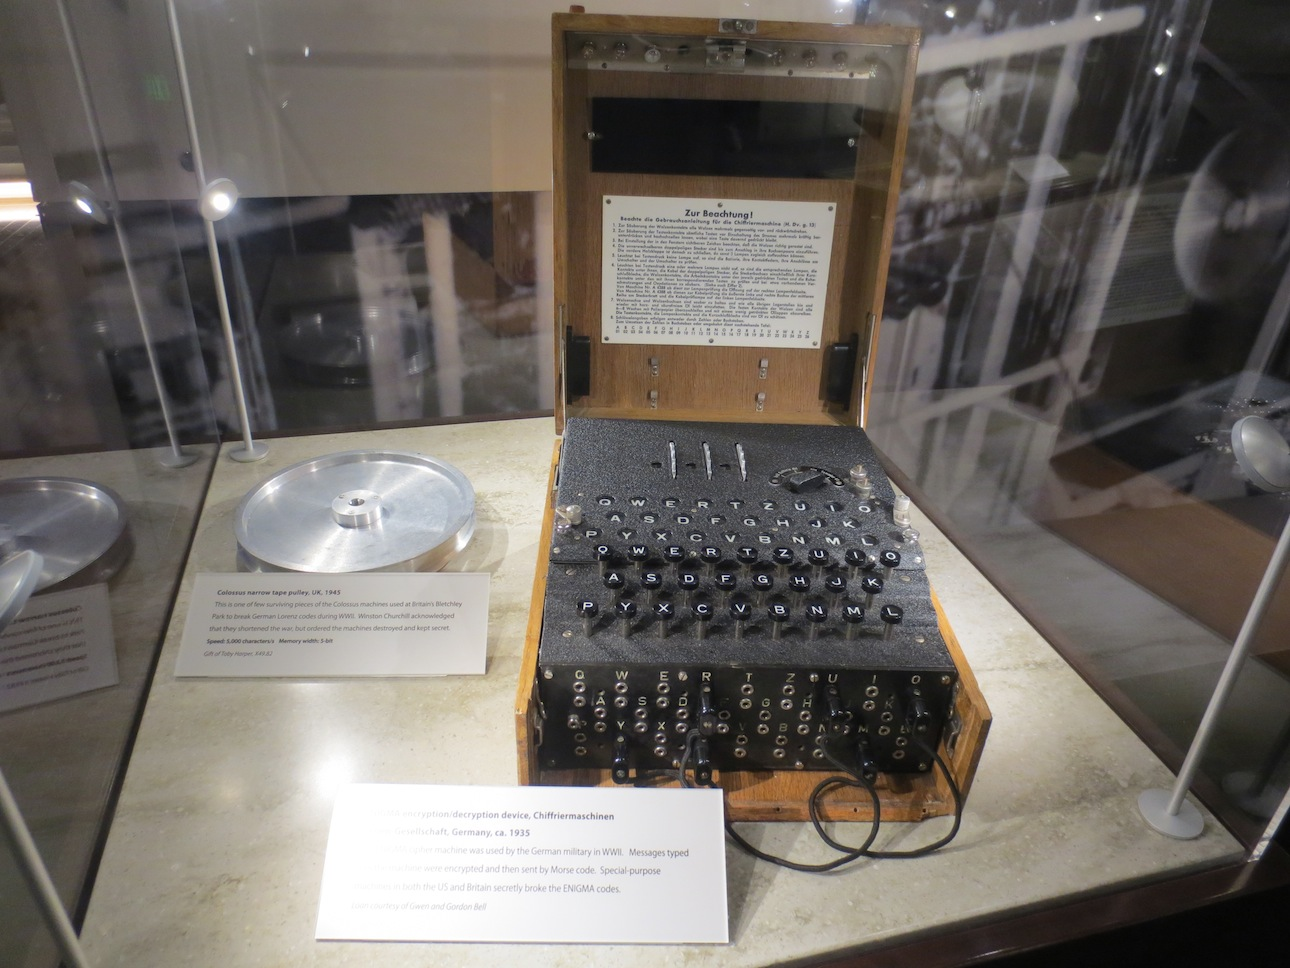 Enigma machine from Nazi Germany.